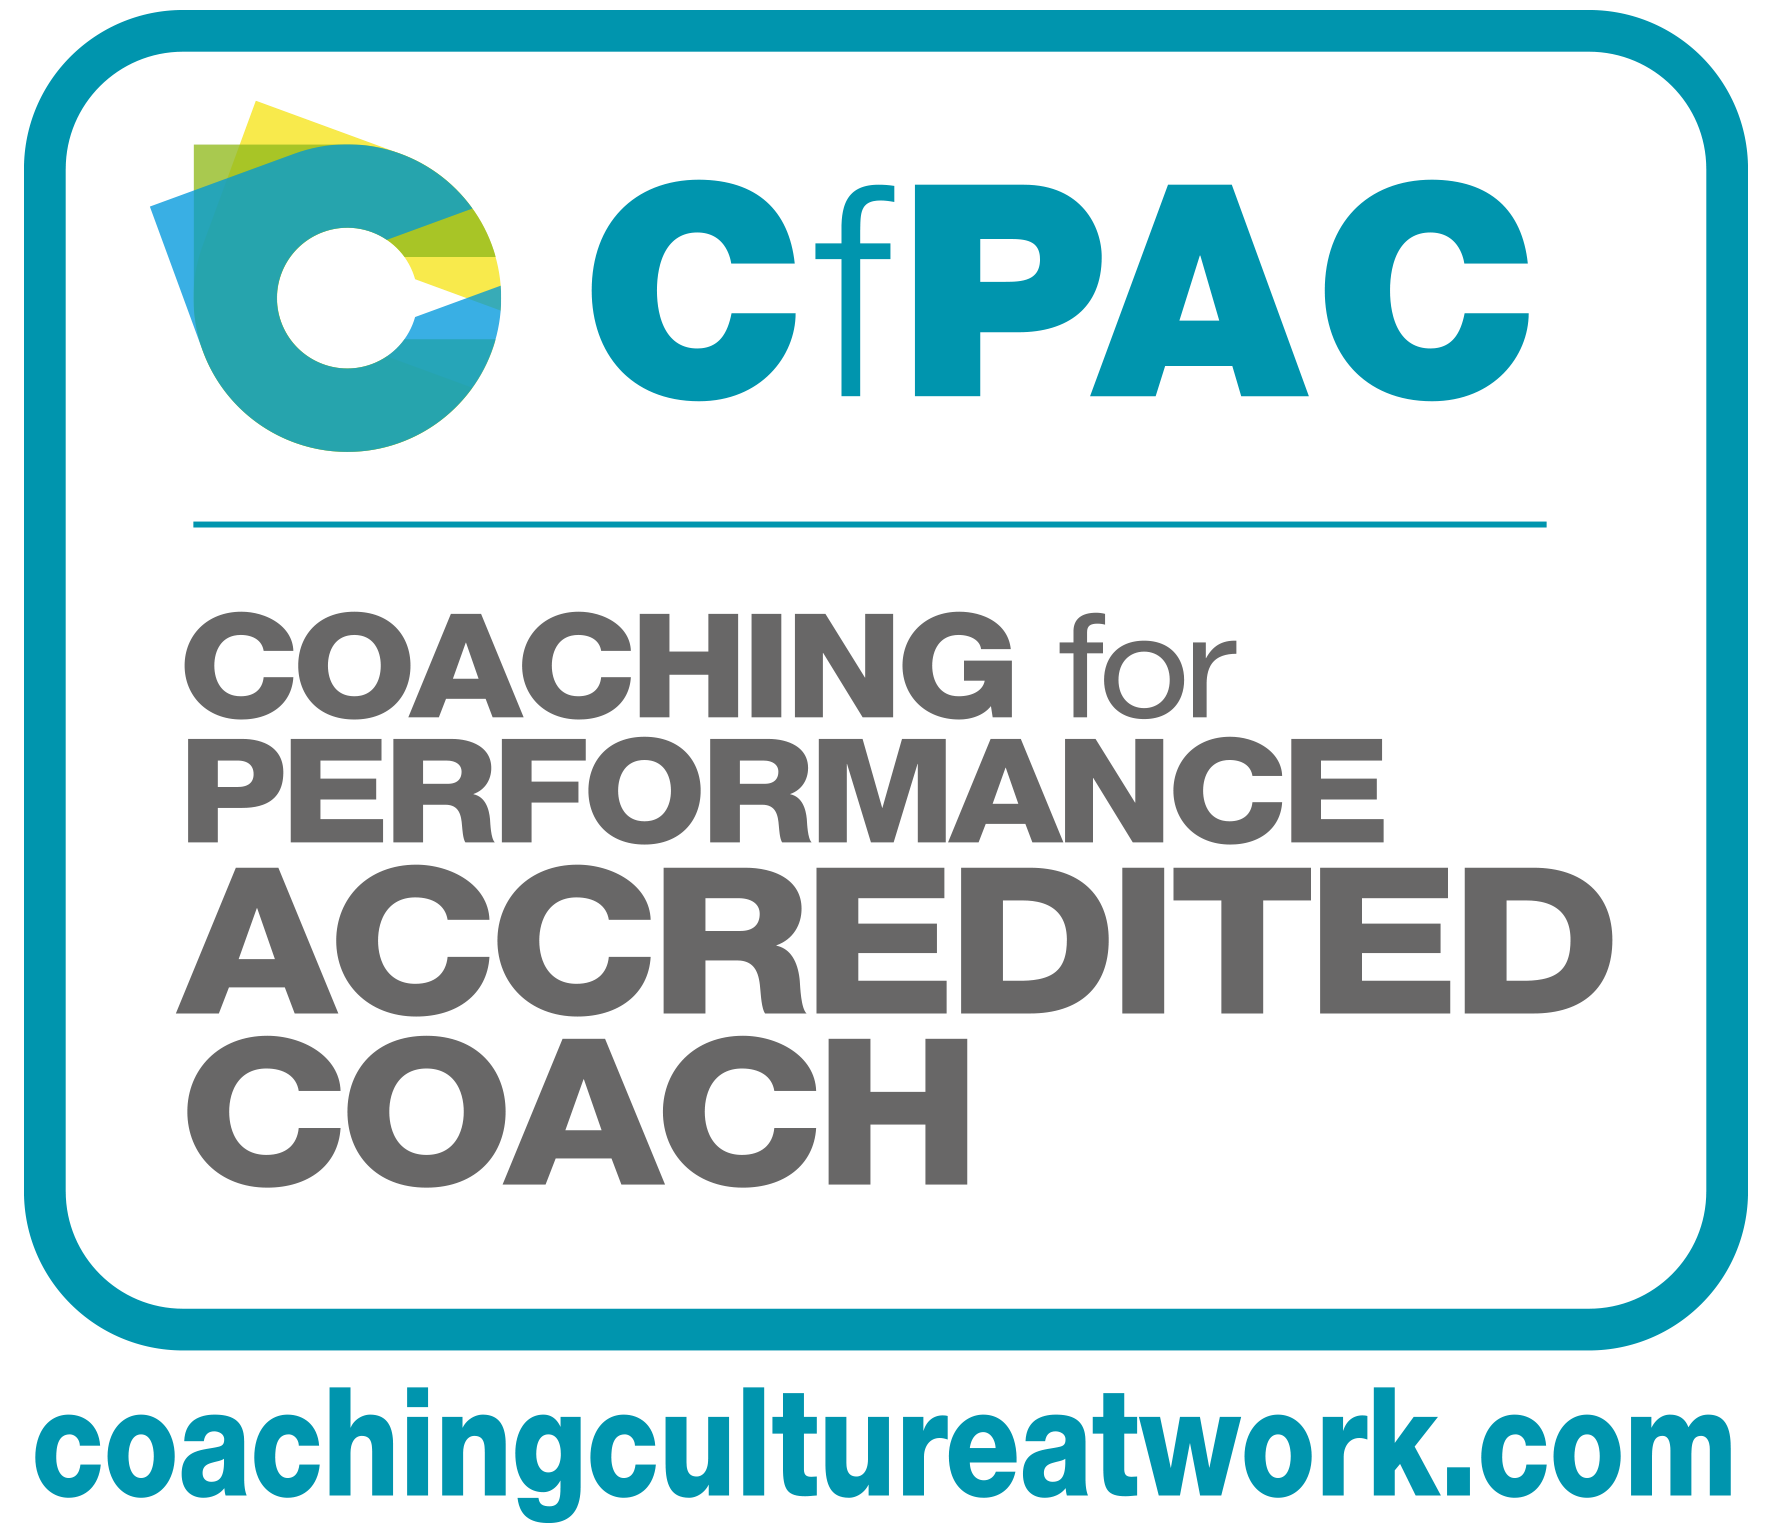 Coaching for Performance Accredited Coach | CfPAC | professional coach training